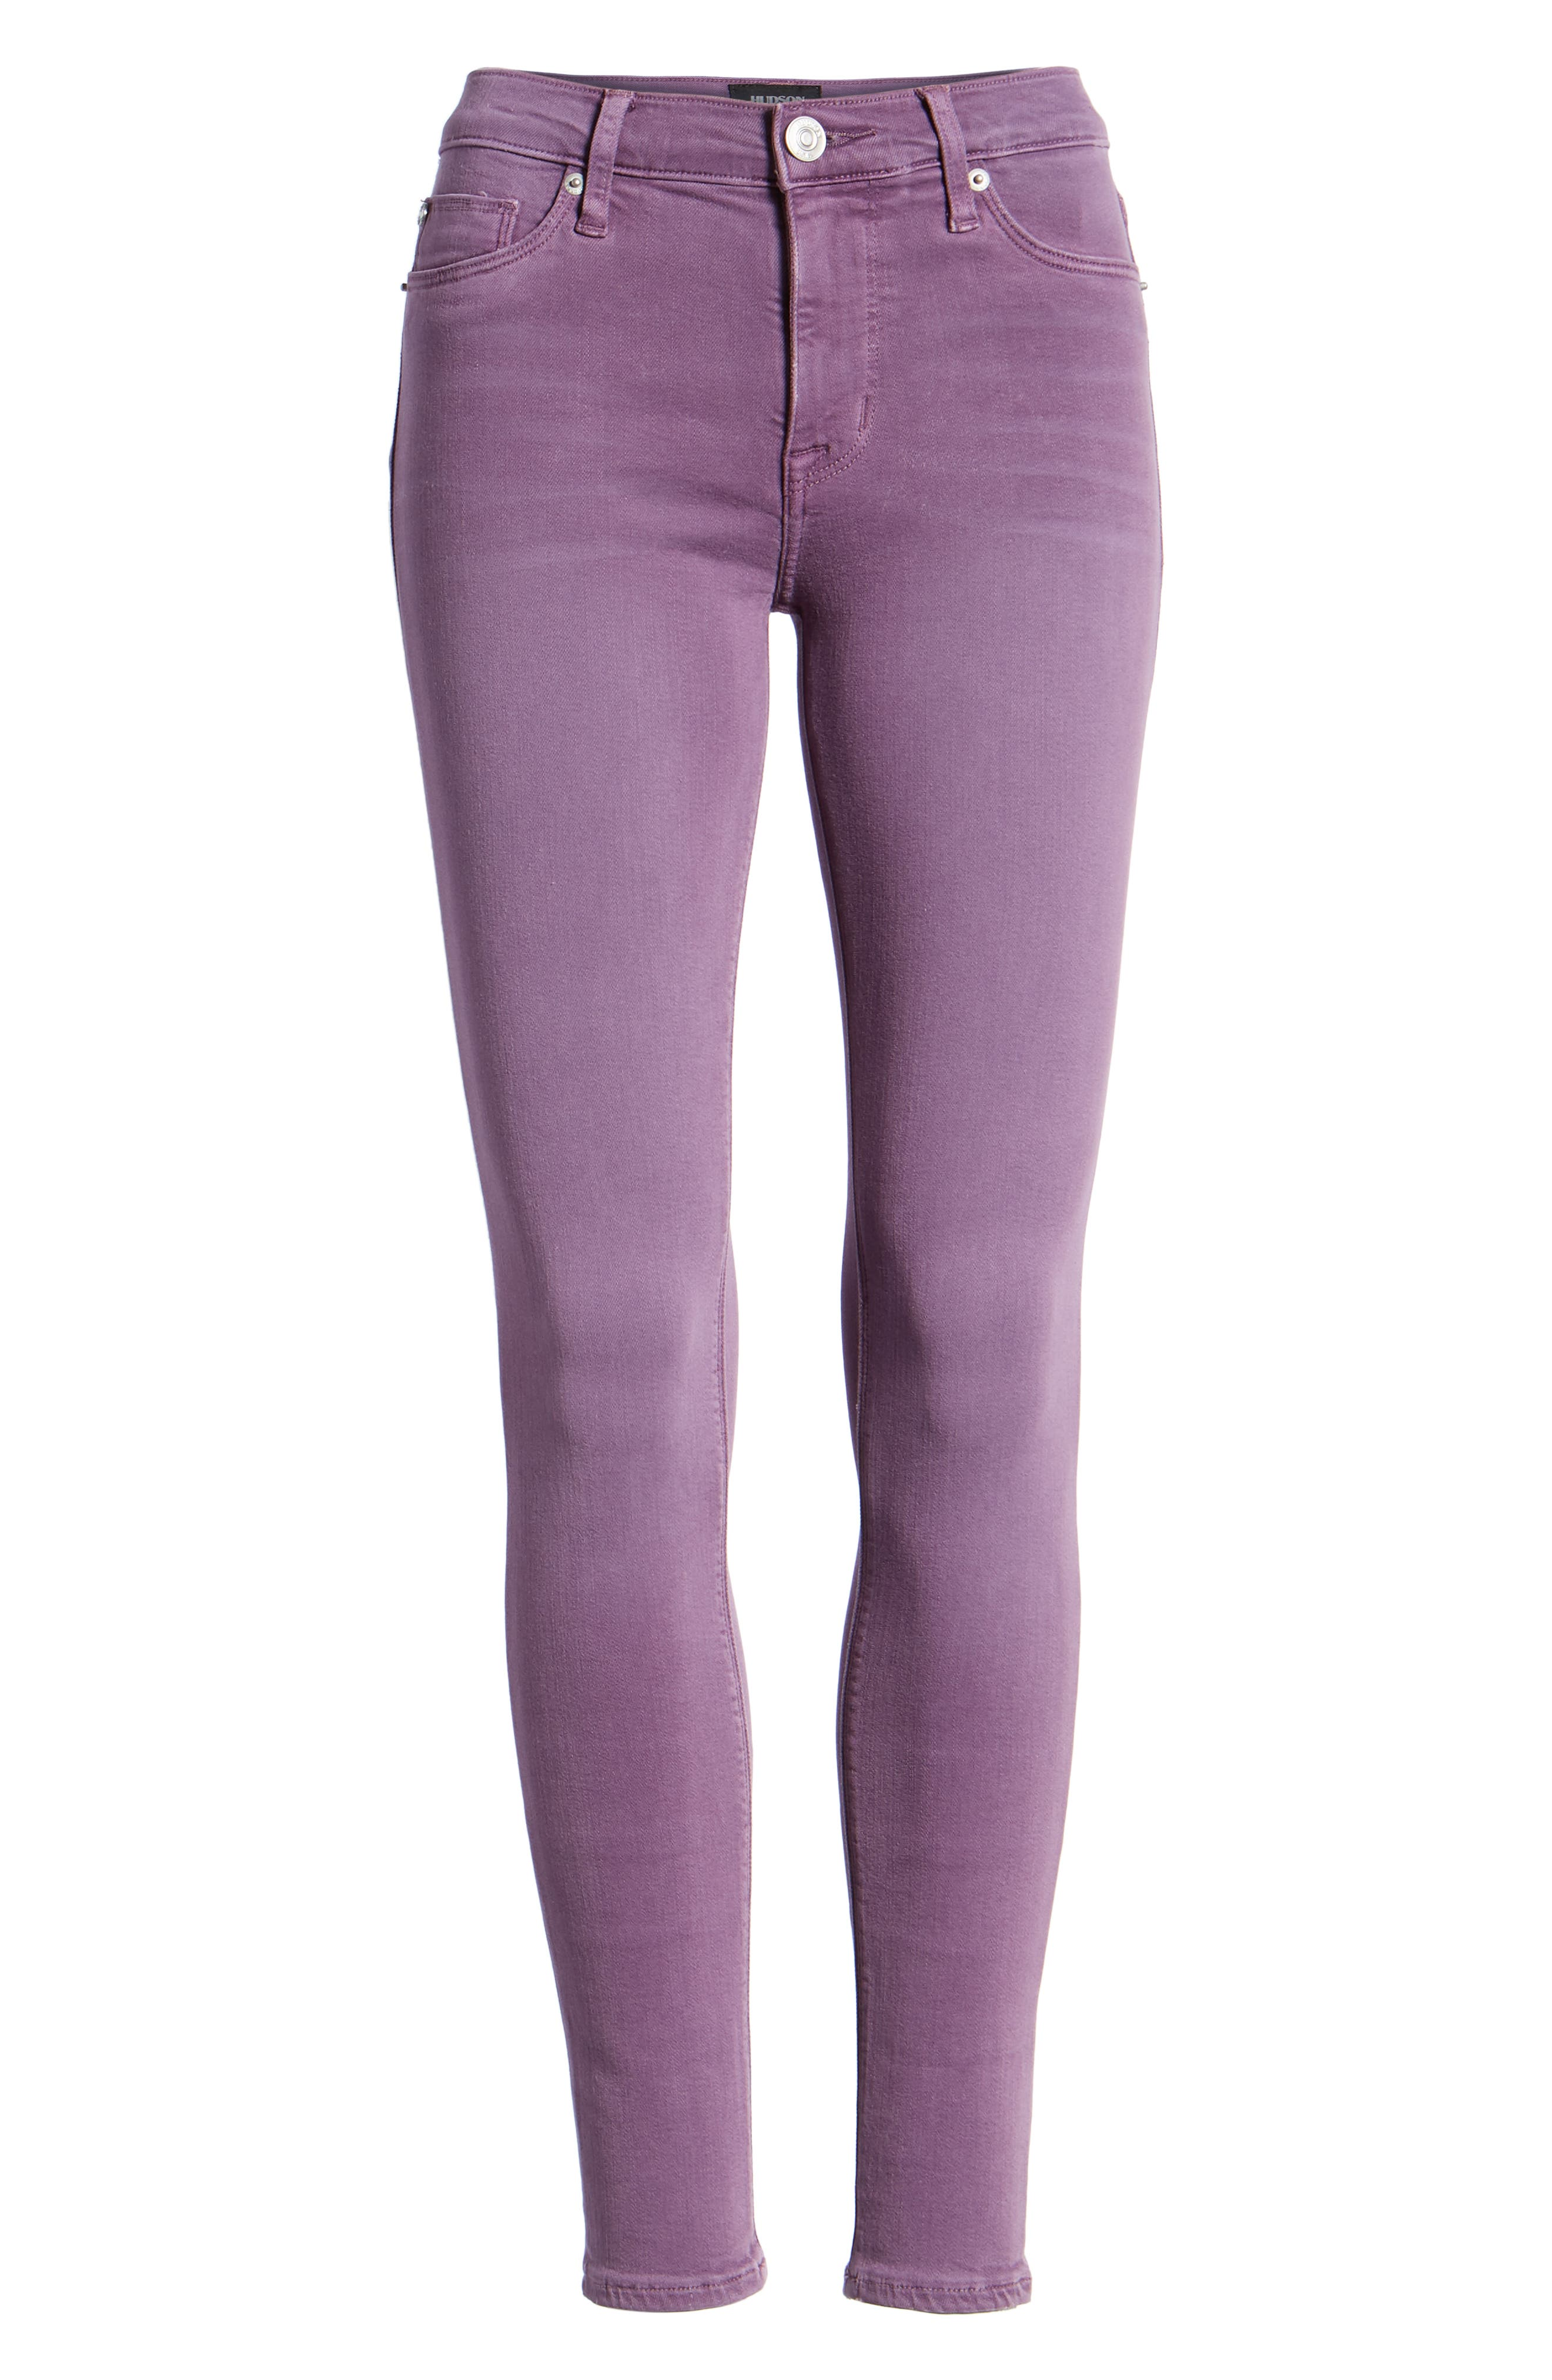 'Nico' Ankle Skinny Jeans,                             Alternate thumbnail 7, color,                             512